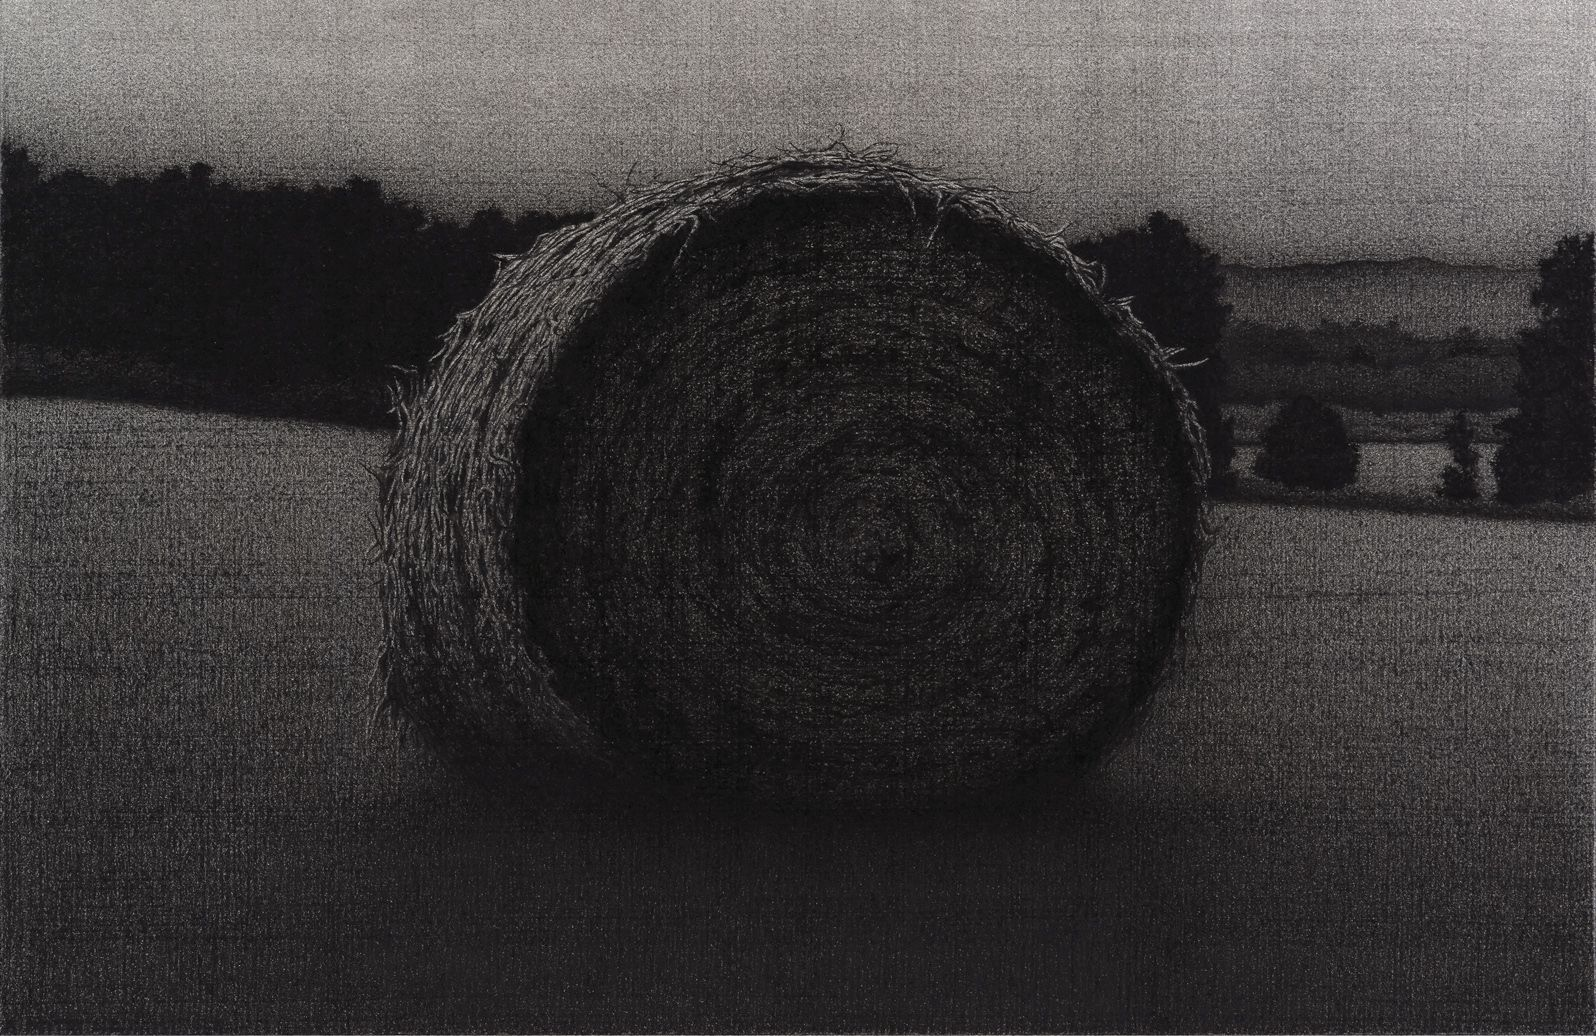 anthony mitri, Hay Bale, Bundysburg, 2012, charcoal on paper, 24 x 17 inches